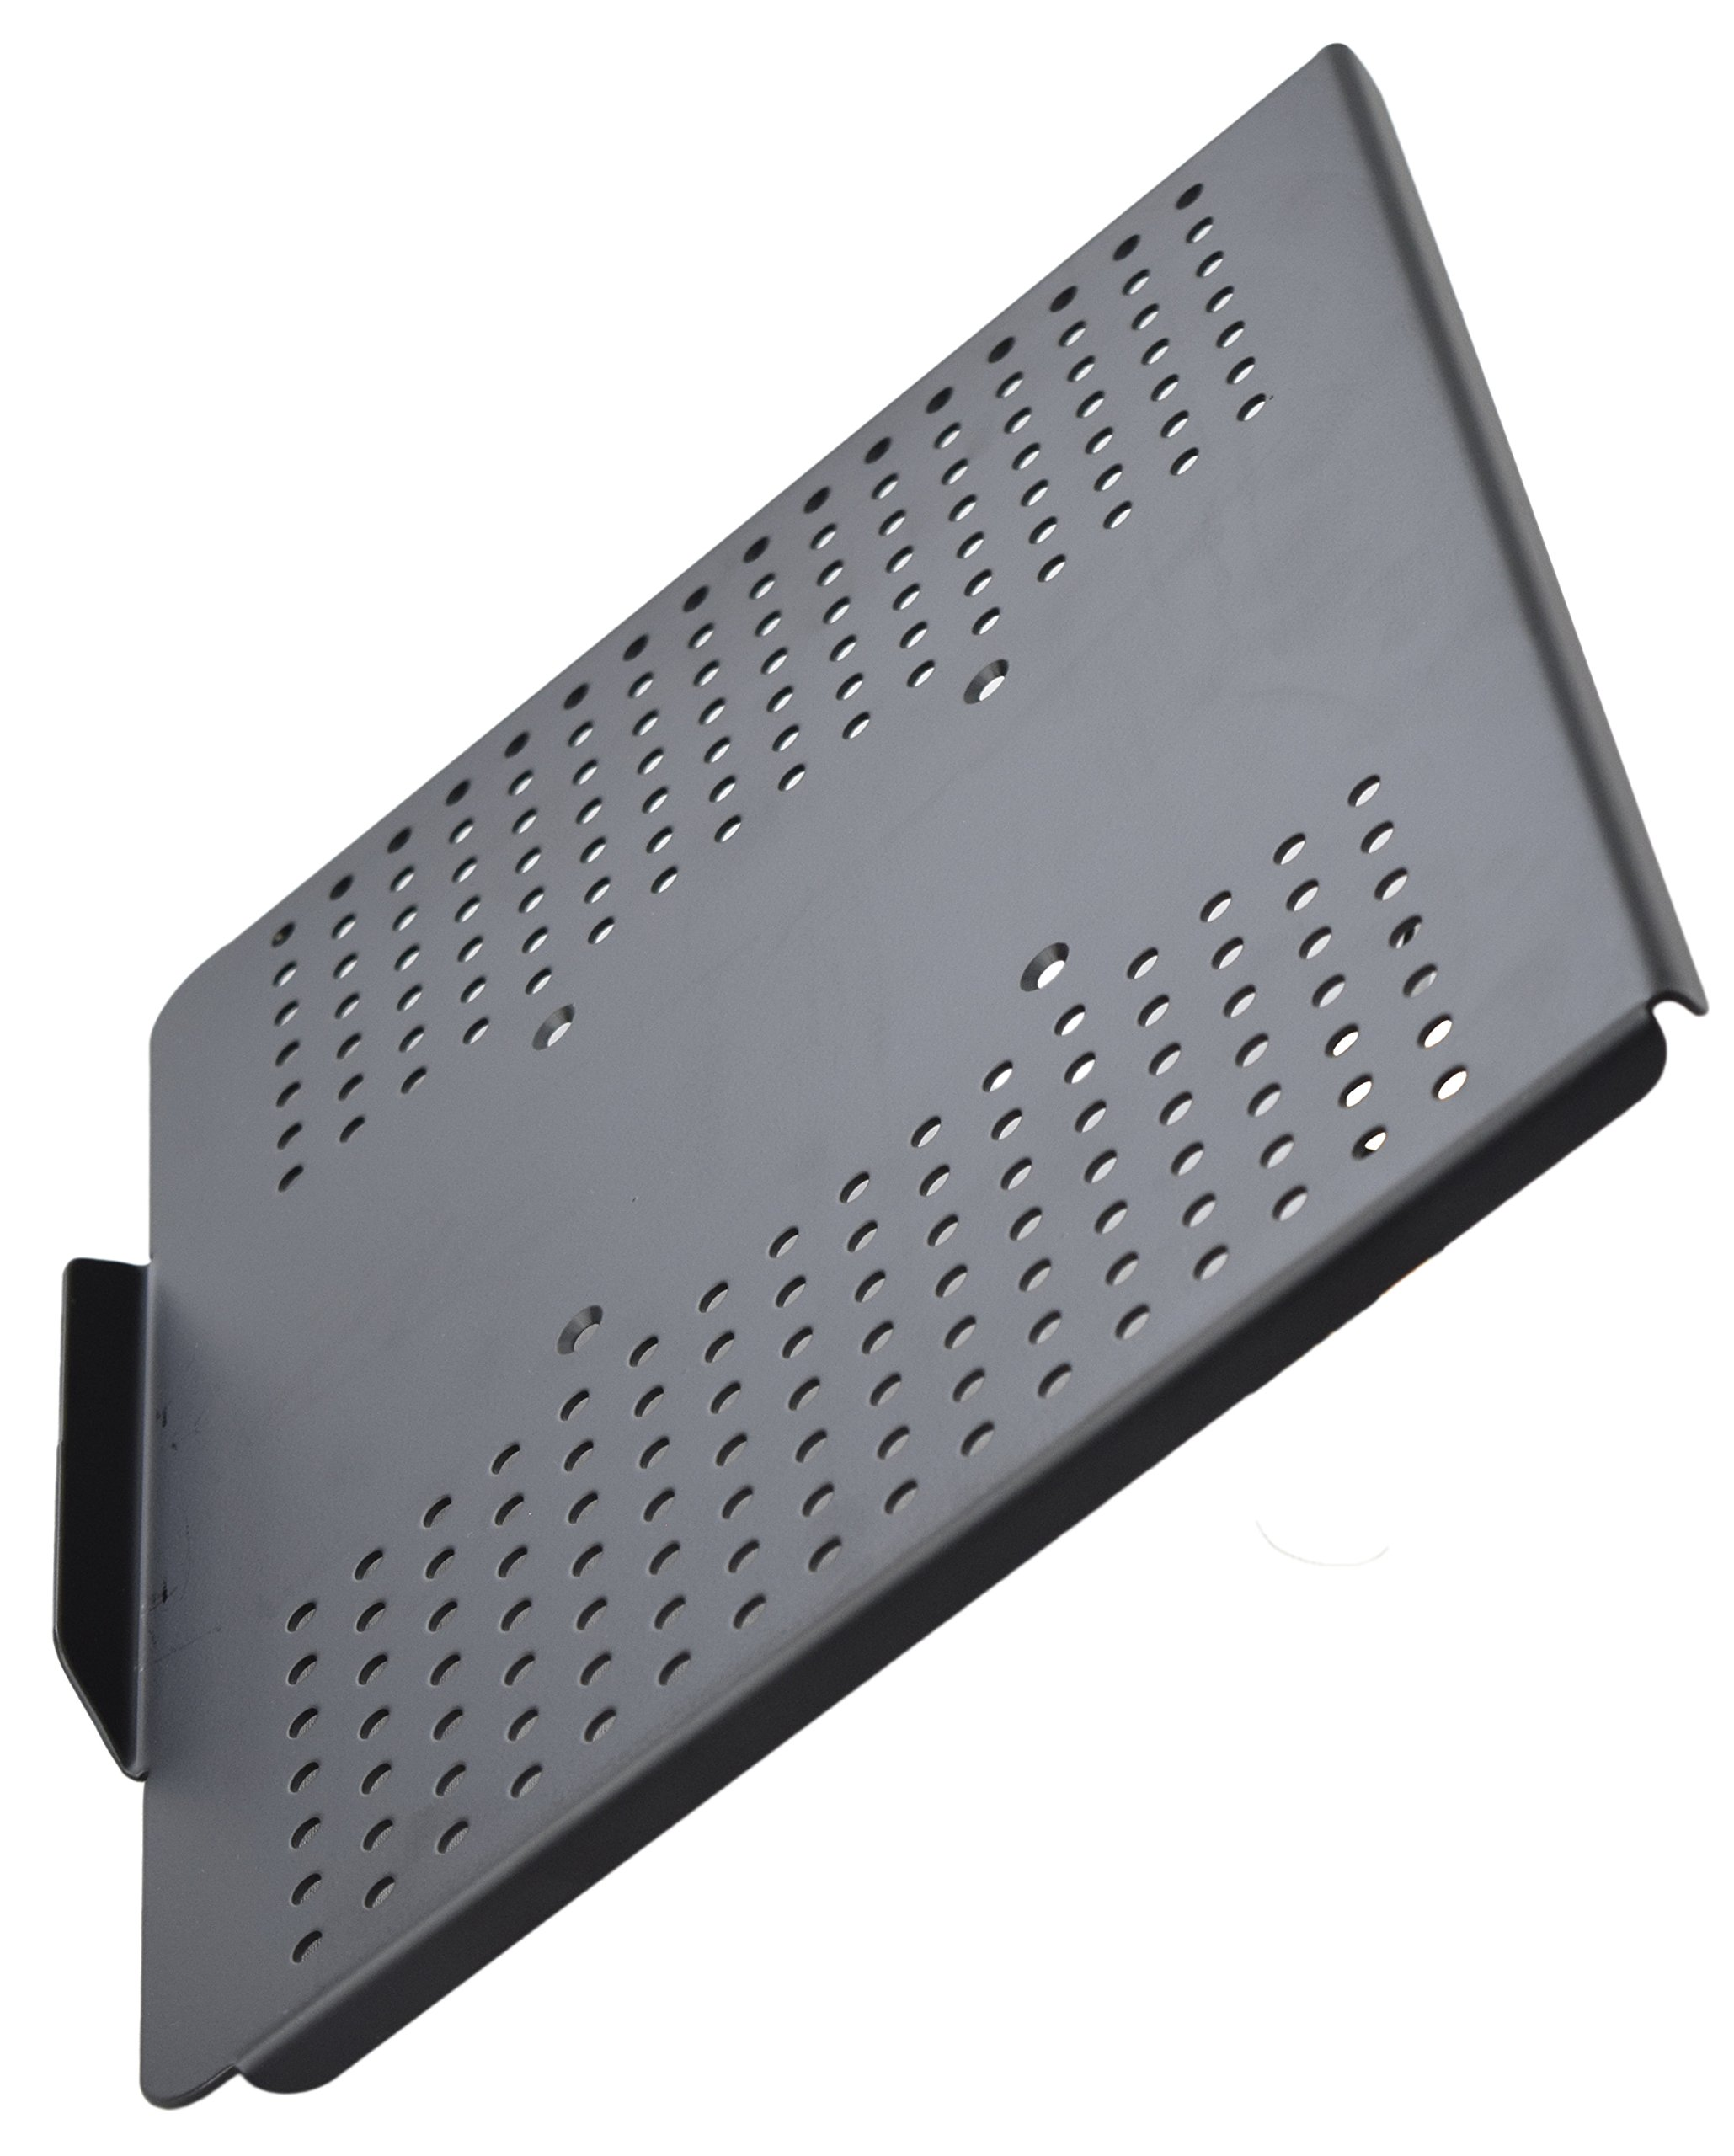 VIVO Laptop Notebook Steel Tray Platform (Tray Only) for VESA Mount Stand | Fits 100 mm Plate Holes (STAND-LAP2)